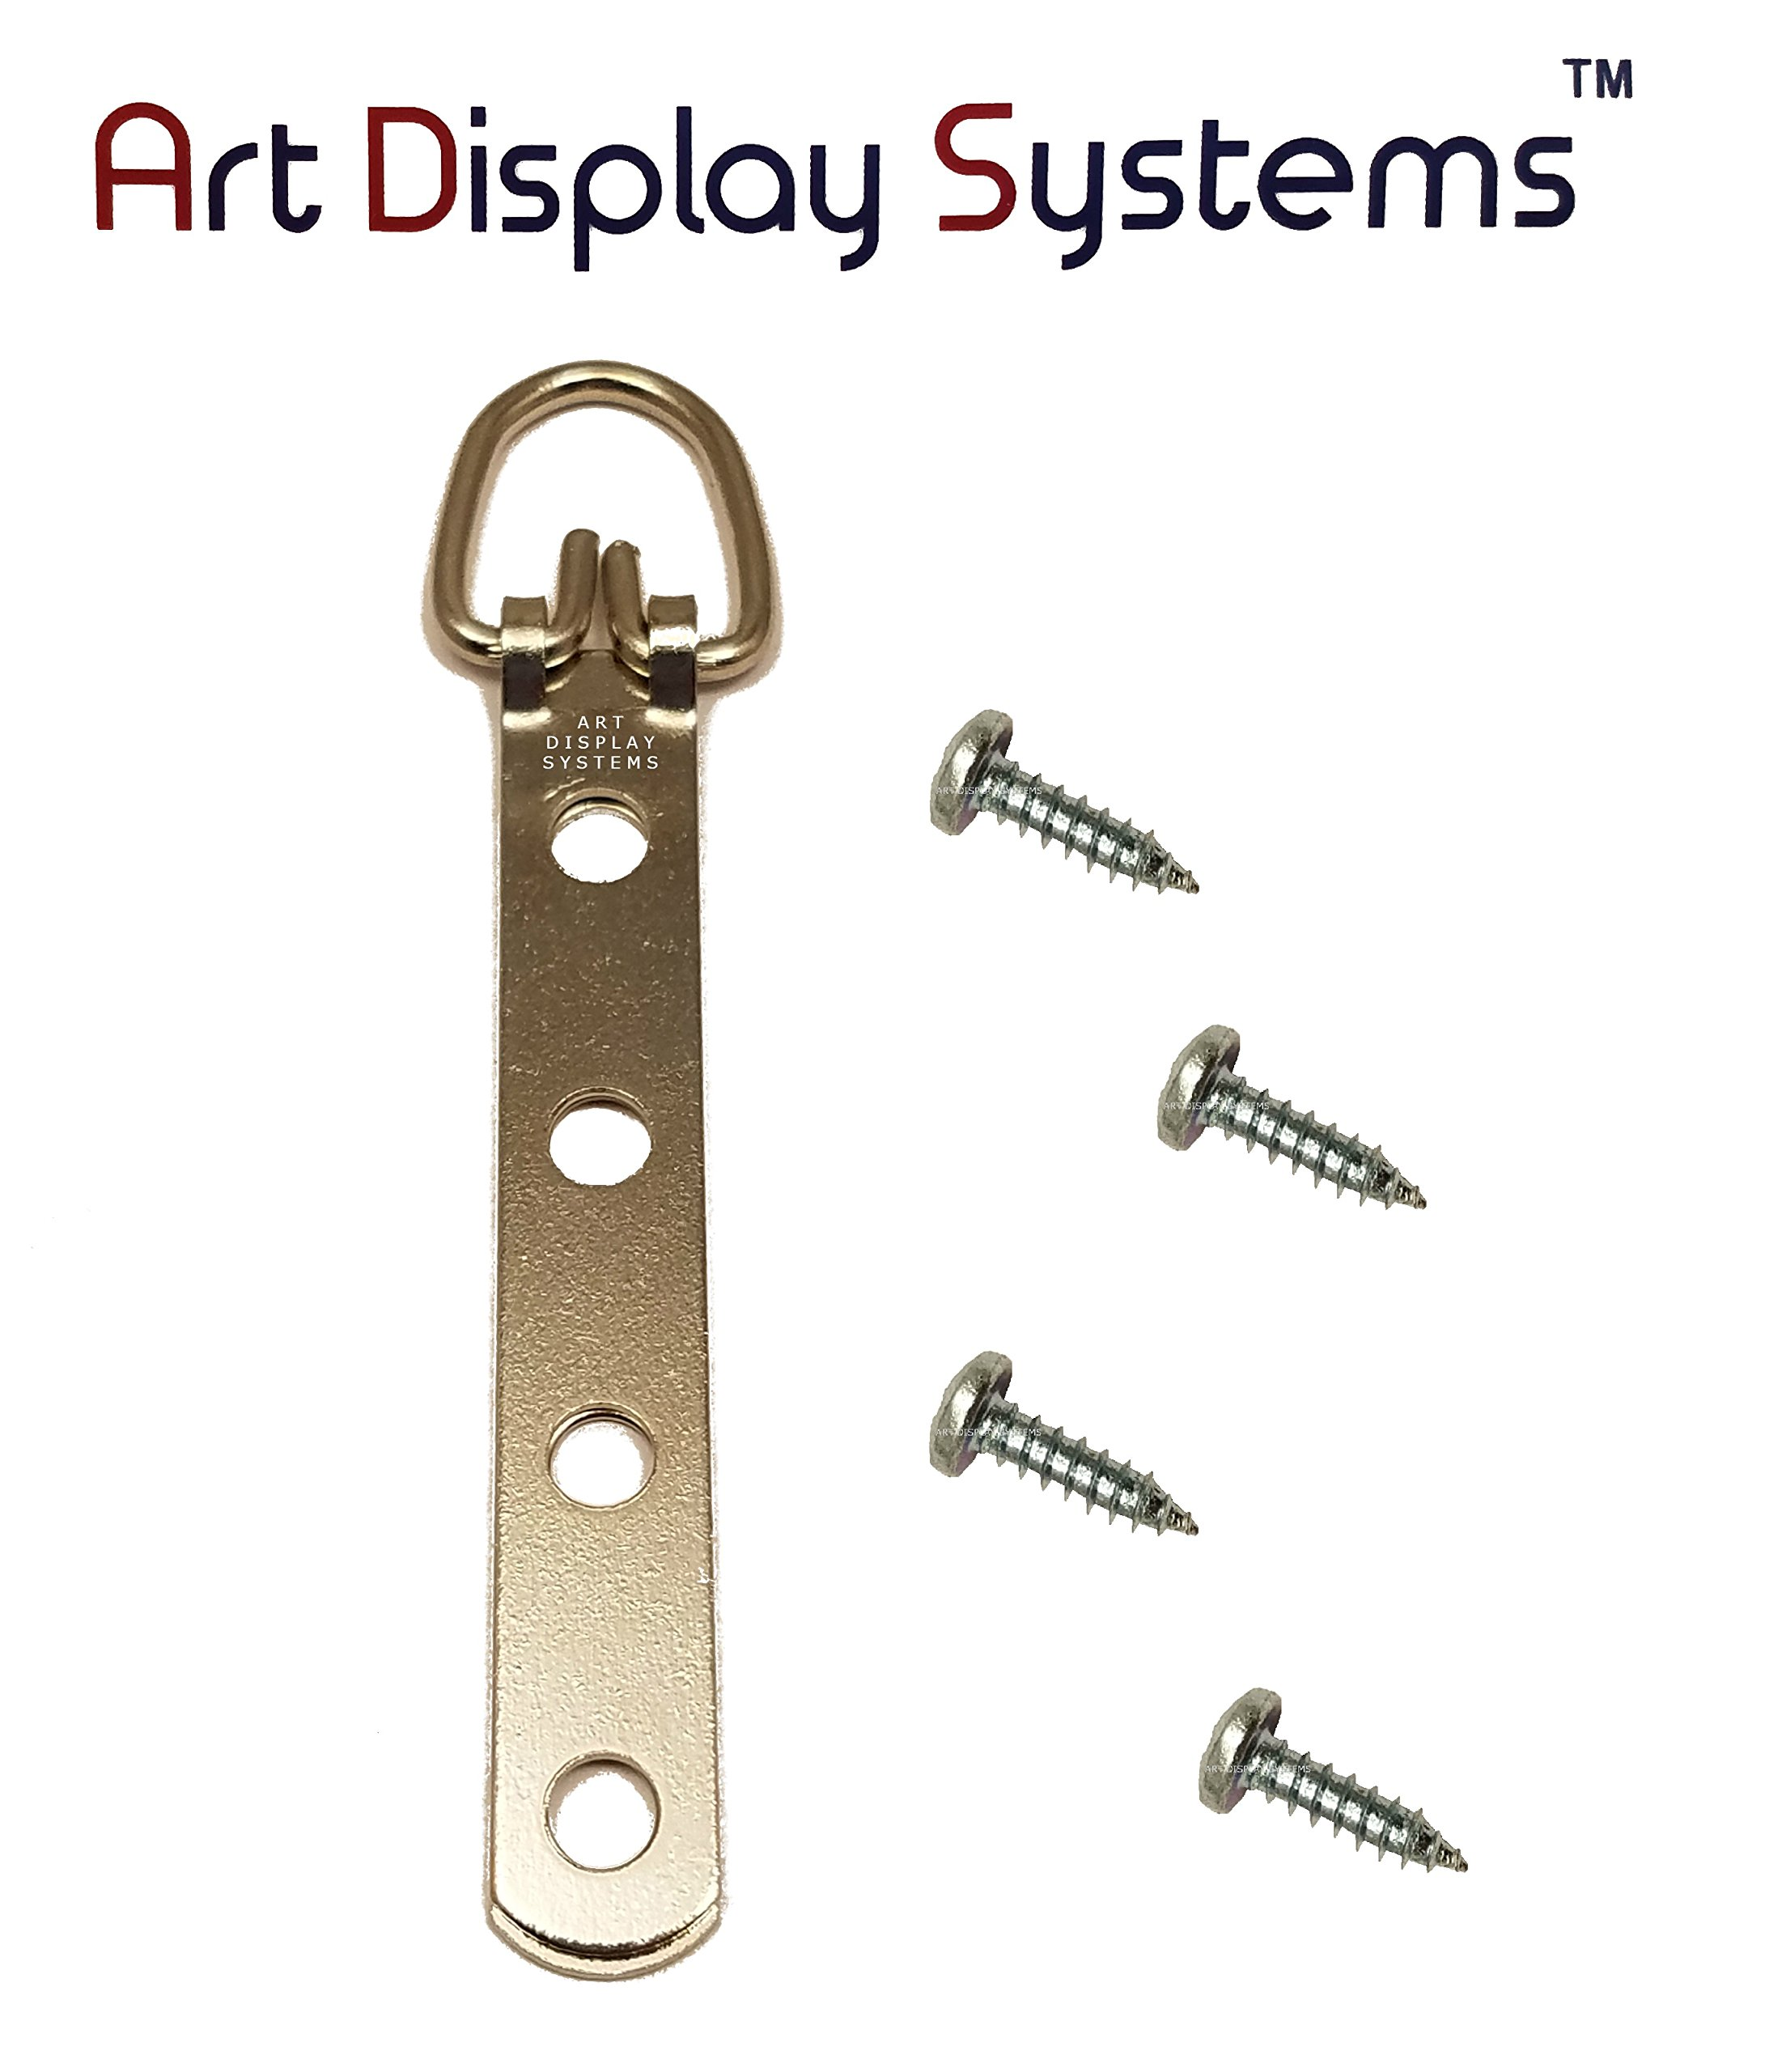 ADS 4 Narrow Duty ZP D-Ring Hanger with 6 1/2 Screws – Pro Quality – 25 Pack by ART DISPLAY SYSTEMS